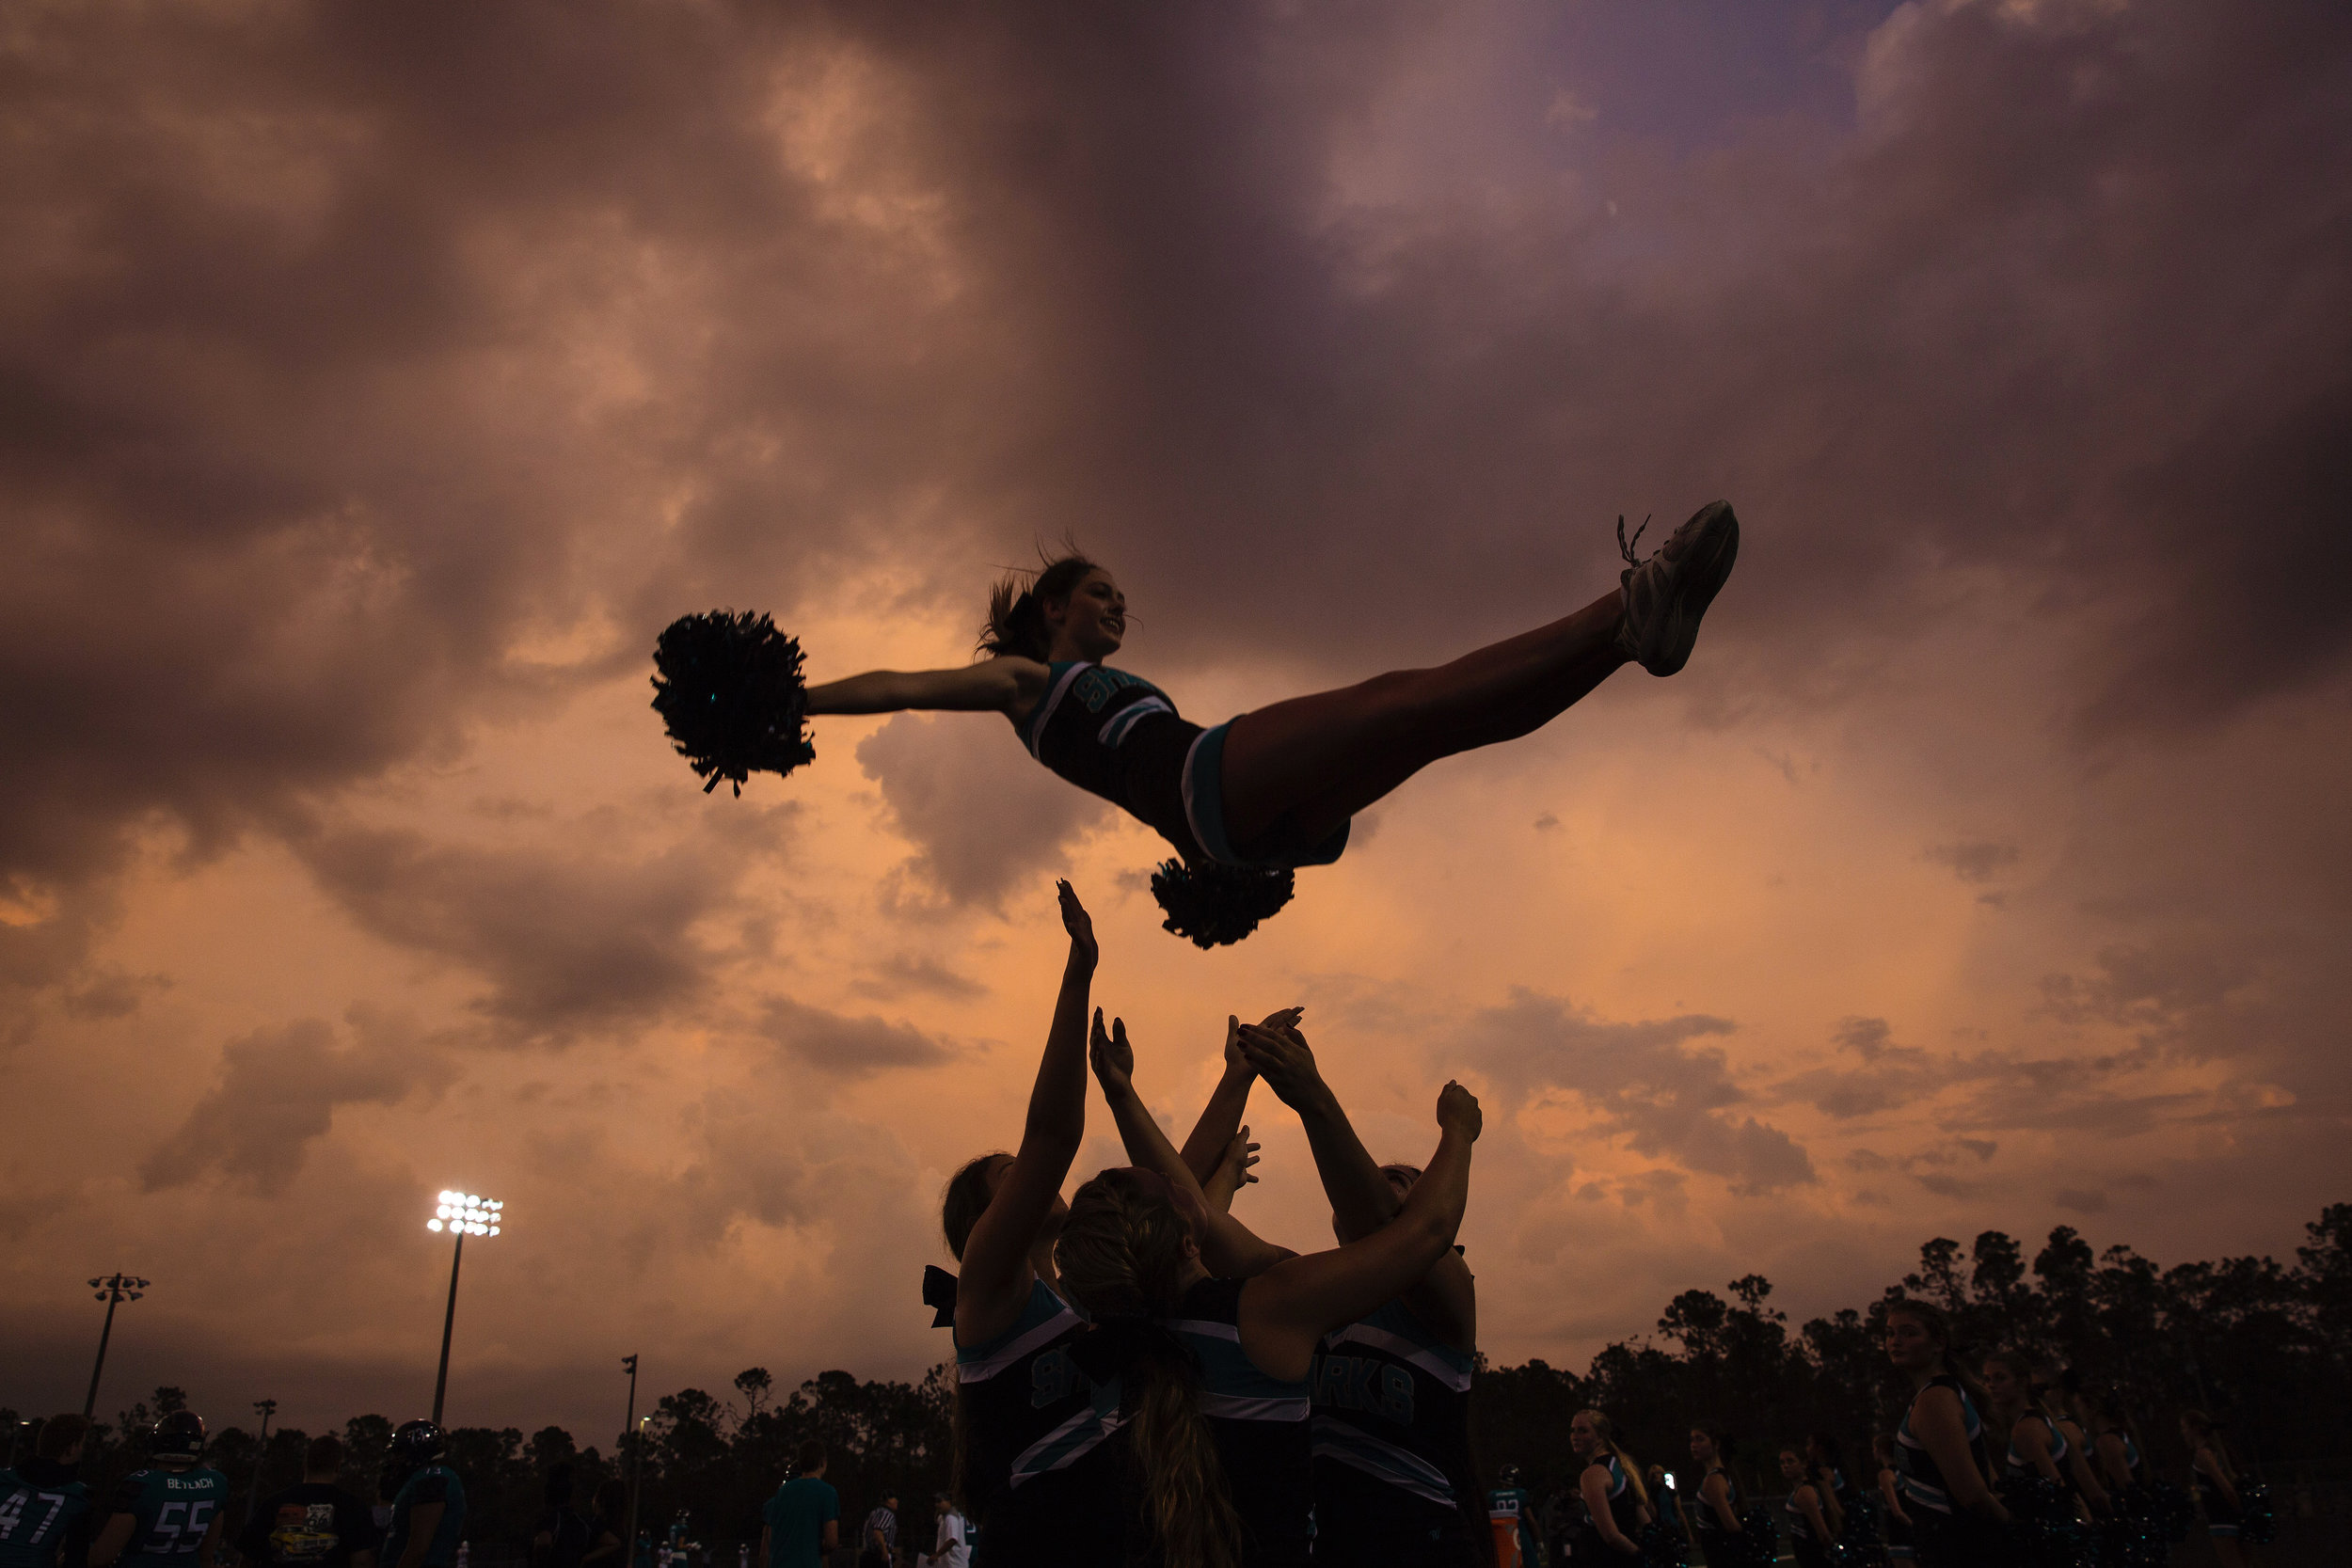 Gulf Coast High School cheerleaders pumped up the crowd at Golden Gate High School in Naples where the Sharks took on the Riverdale Raiders on Thursday, September 28, 2017.